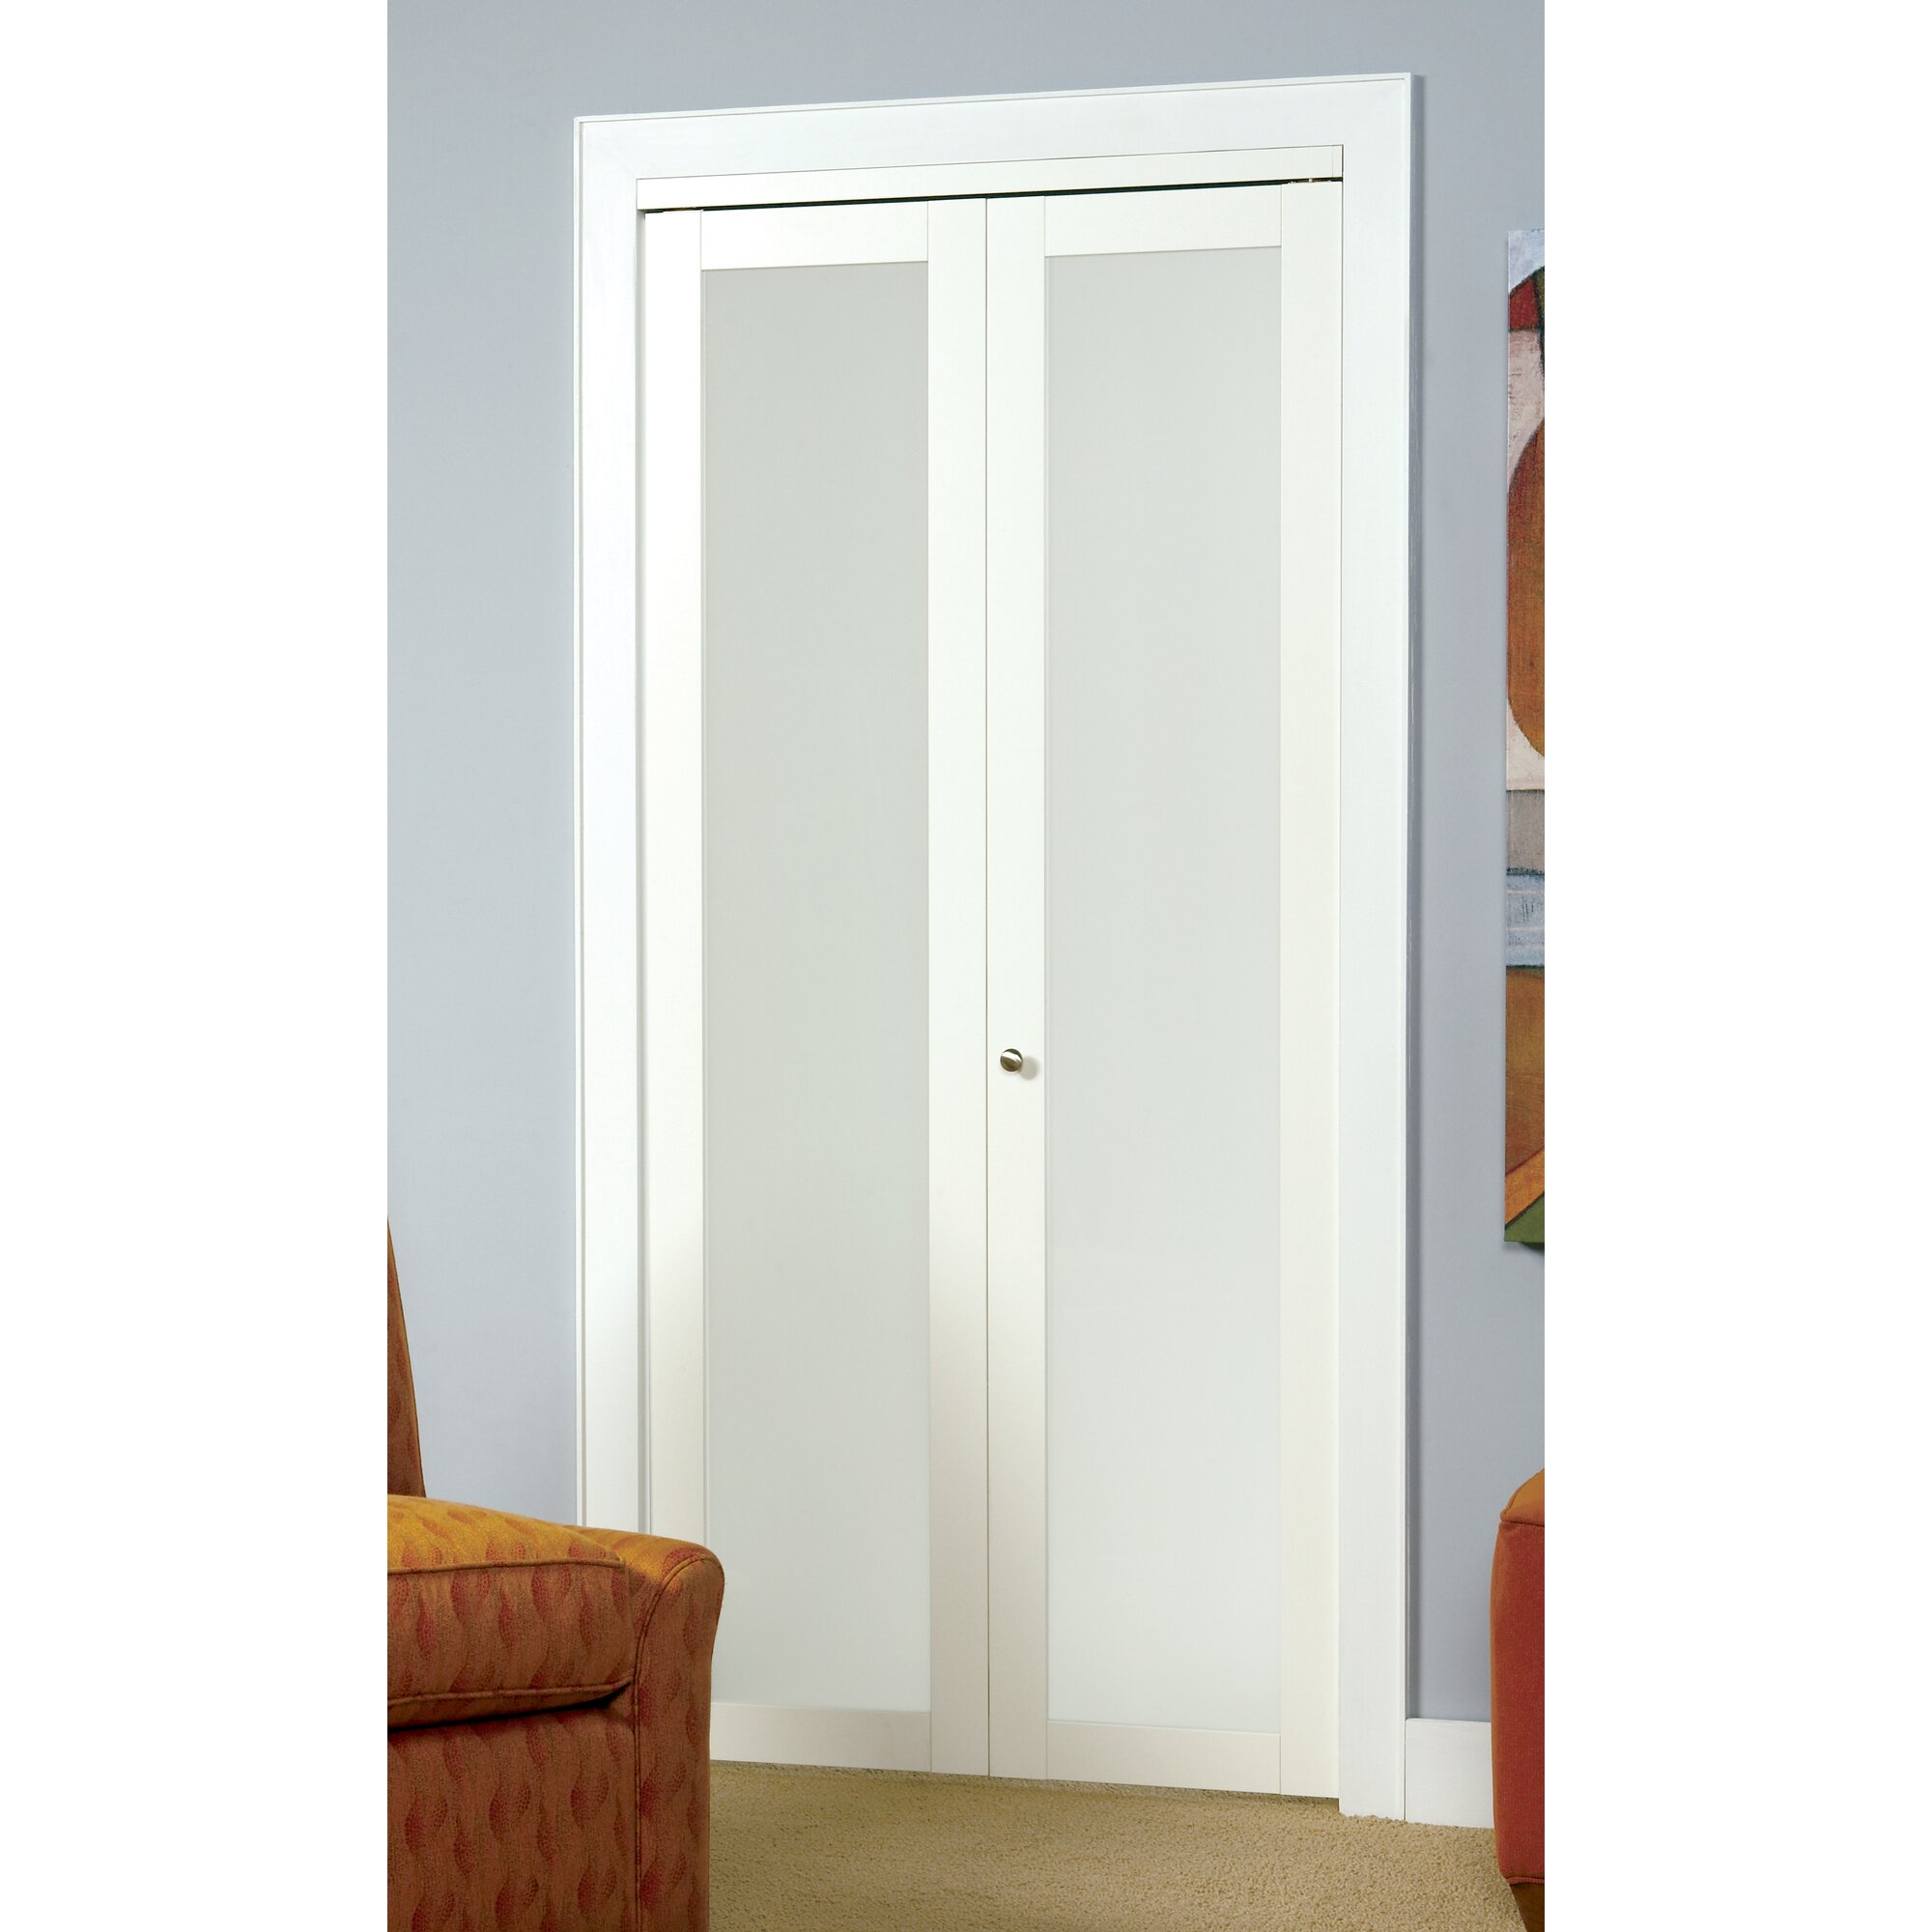 Erias Home Designs Baldarassario Wood 2 Panel Painted Bi Fold Interior Door Reviews Wayfair